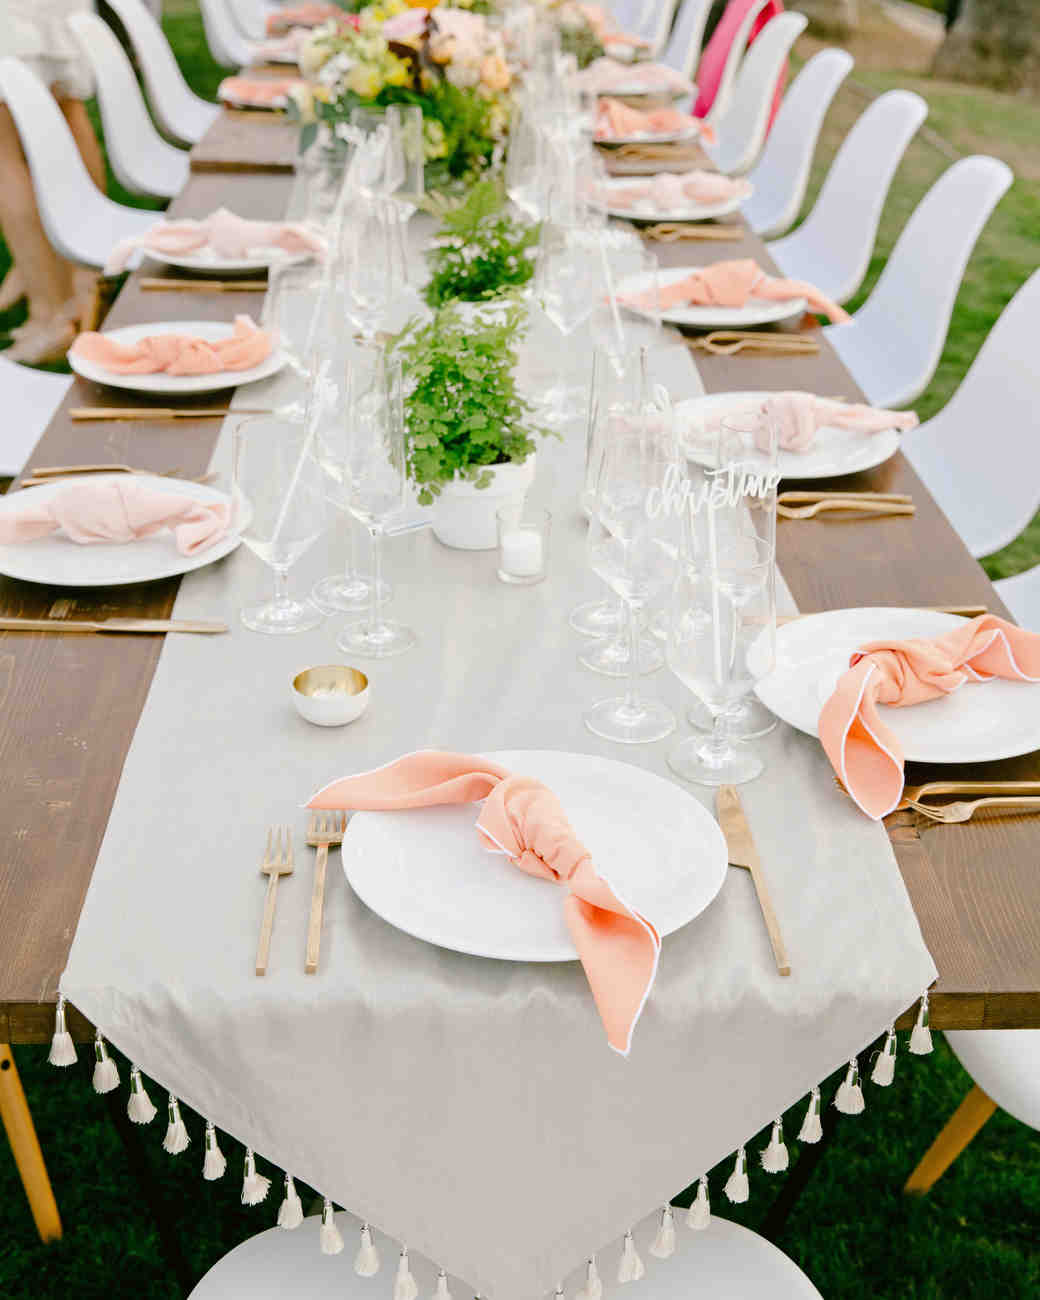 these statement linens will take your wedding reception the next jenn emerling vert artistic accents tablecloth level martha stewart weddings home items foldable outdoor side